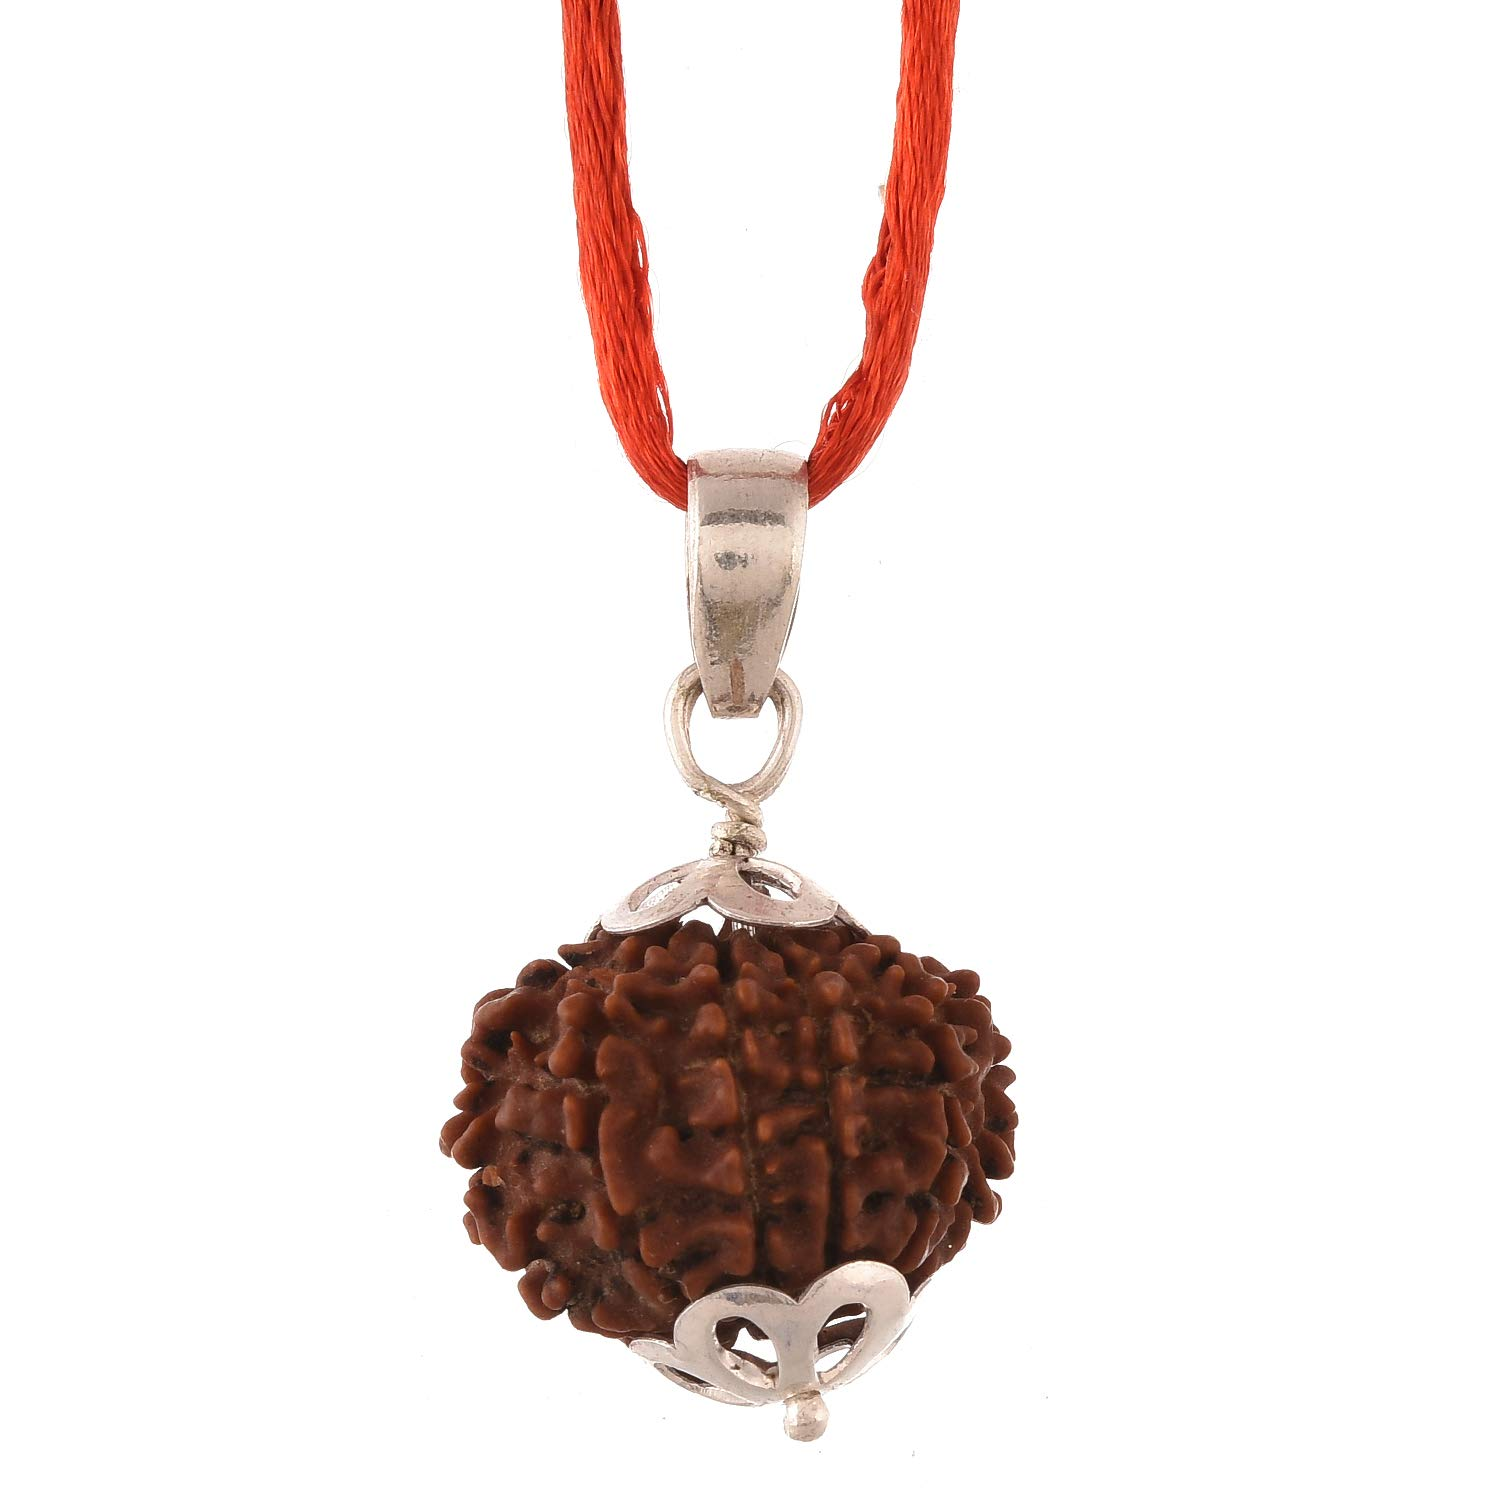 10 Benefits Of Rudraksha Pendant